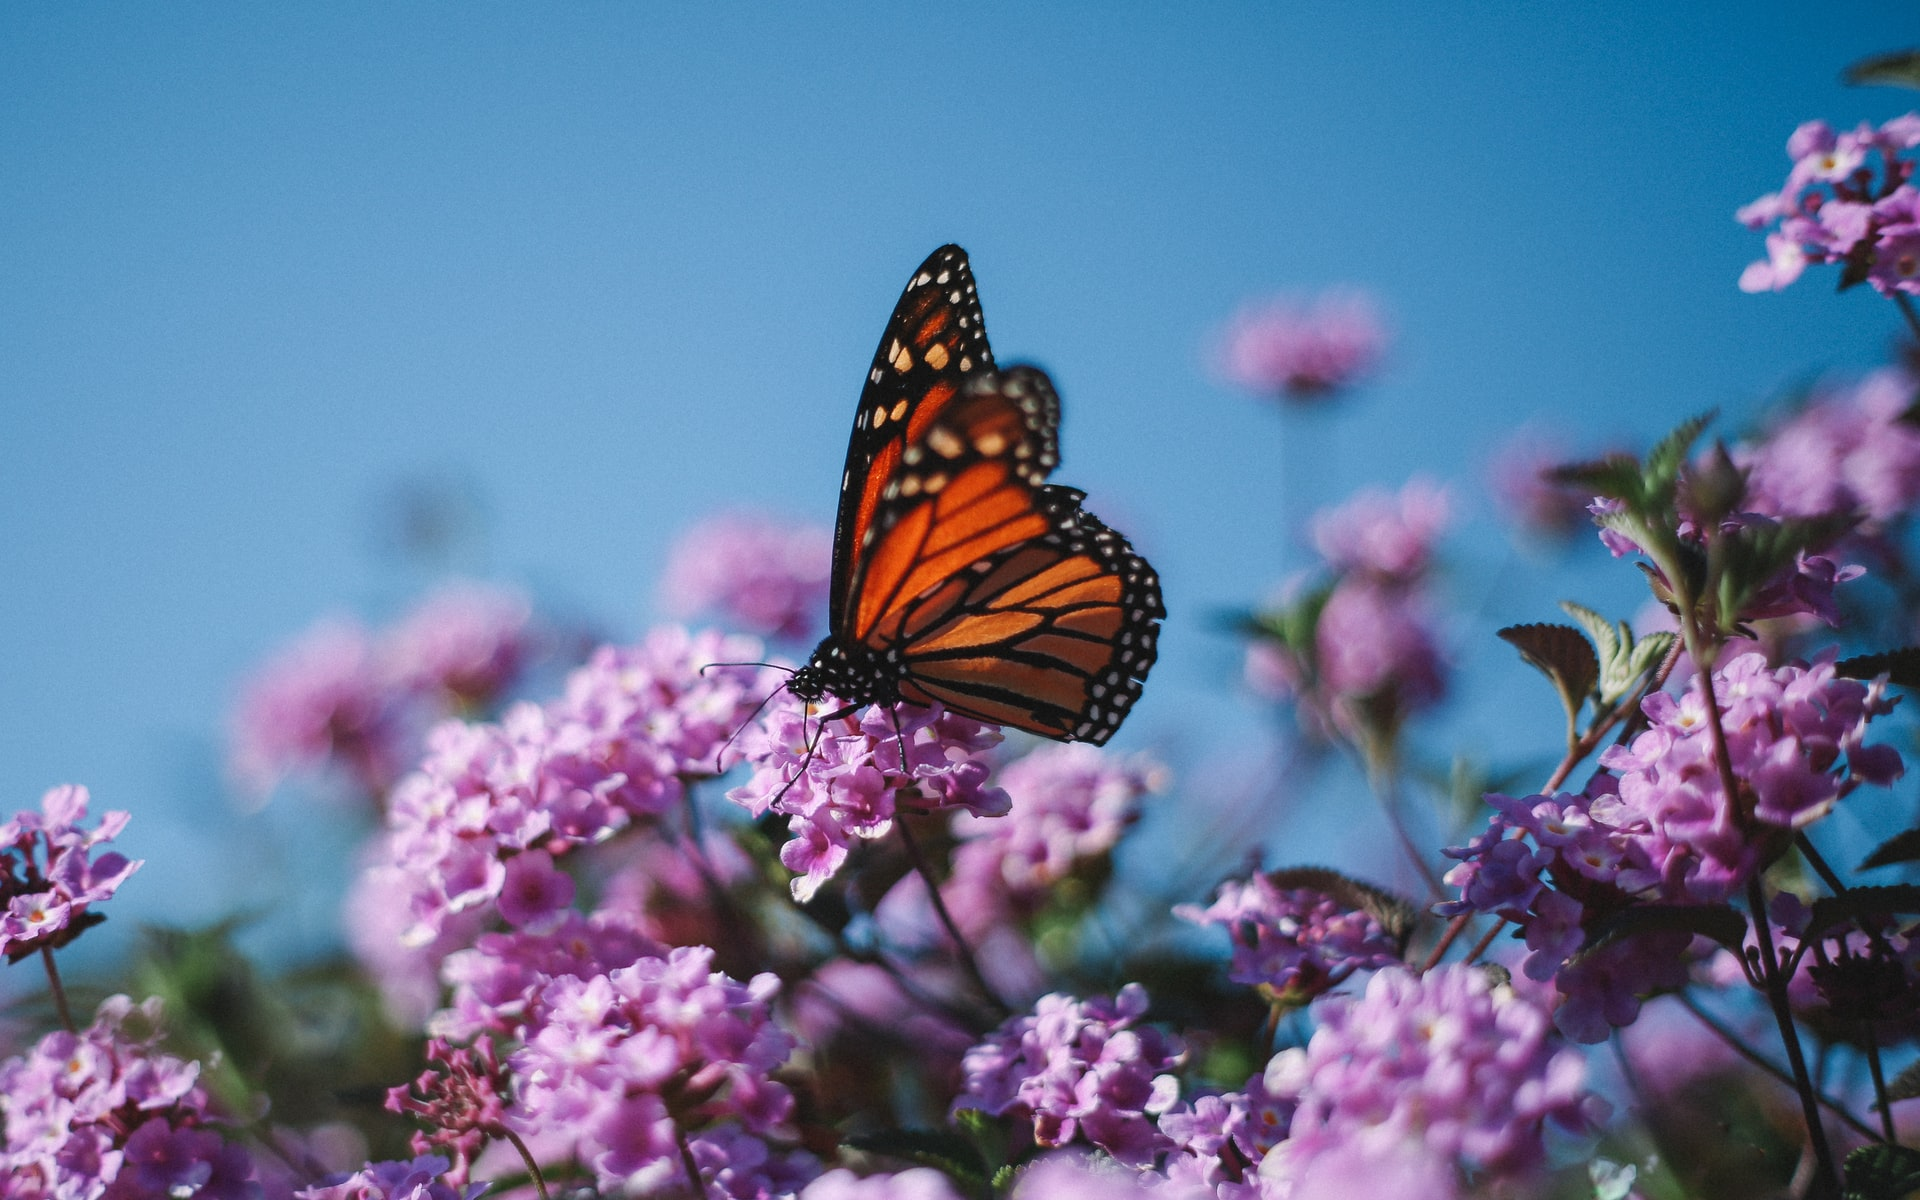 Under a bright, baby blue sky, a orange monarch butterfly sits on some pink flowers.